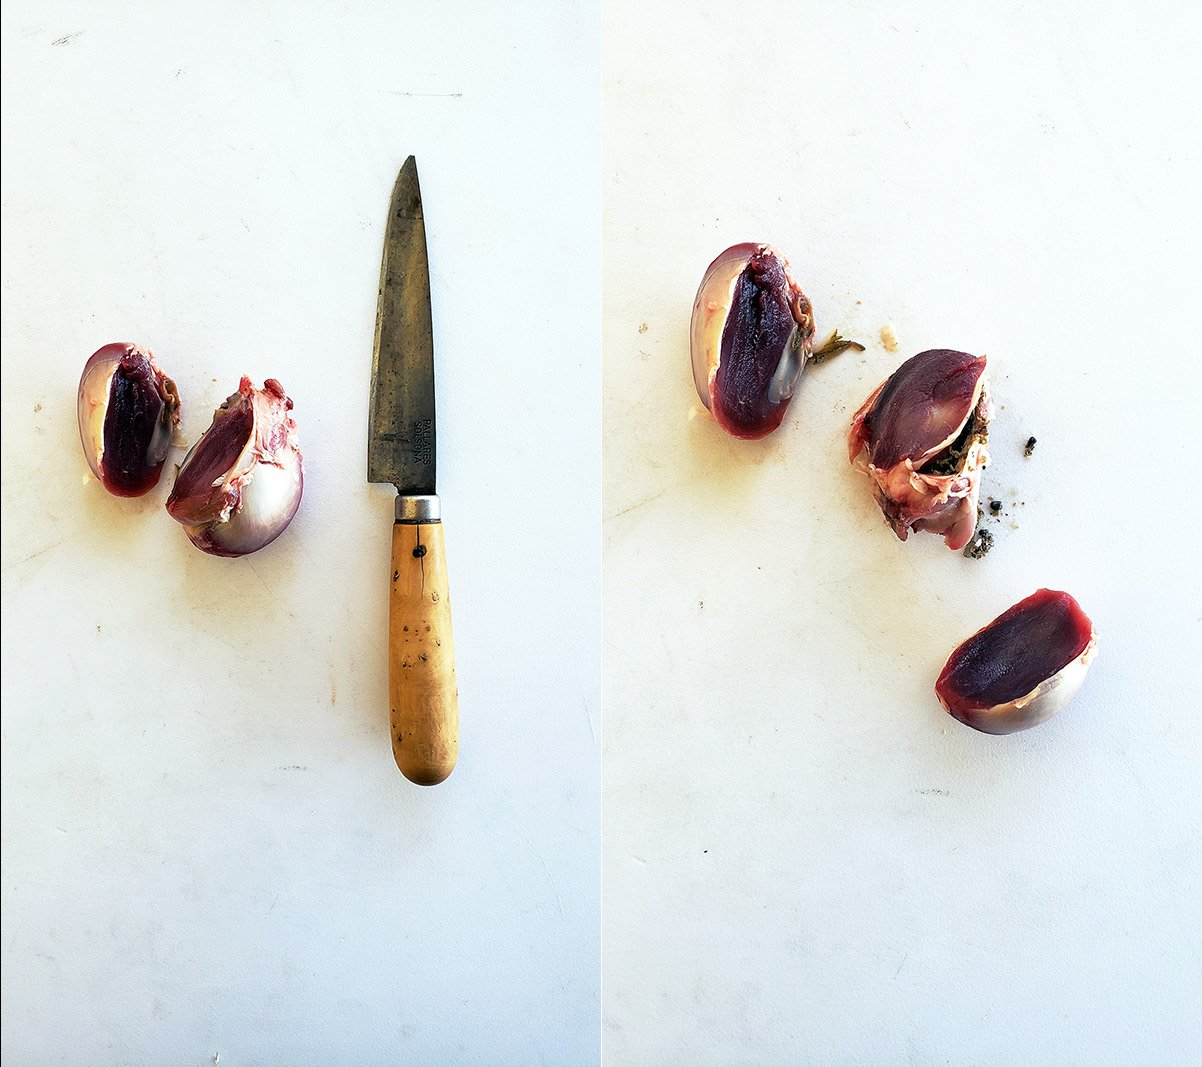 How to clean gizzards with two knife cuts